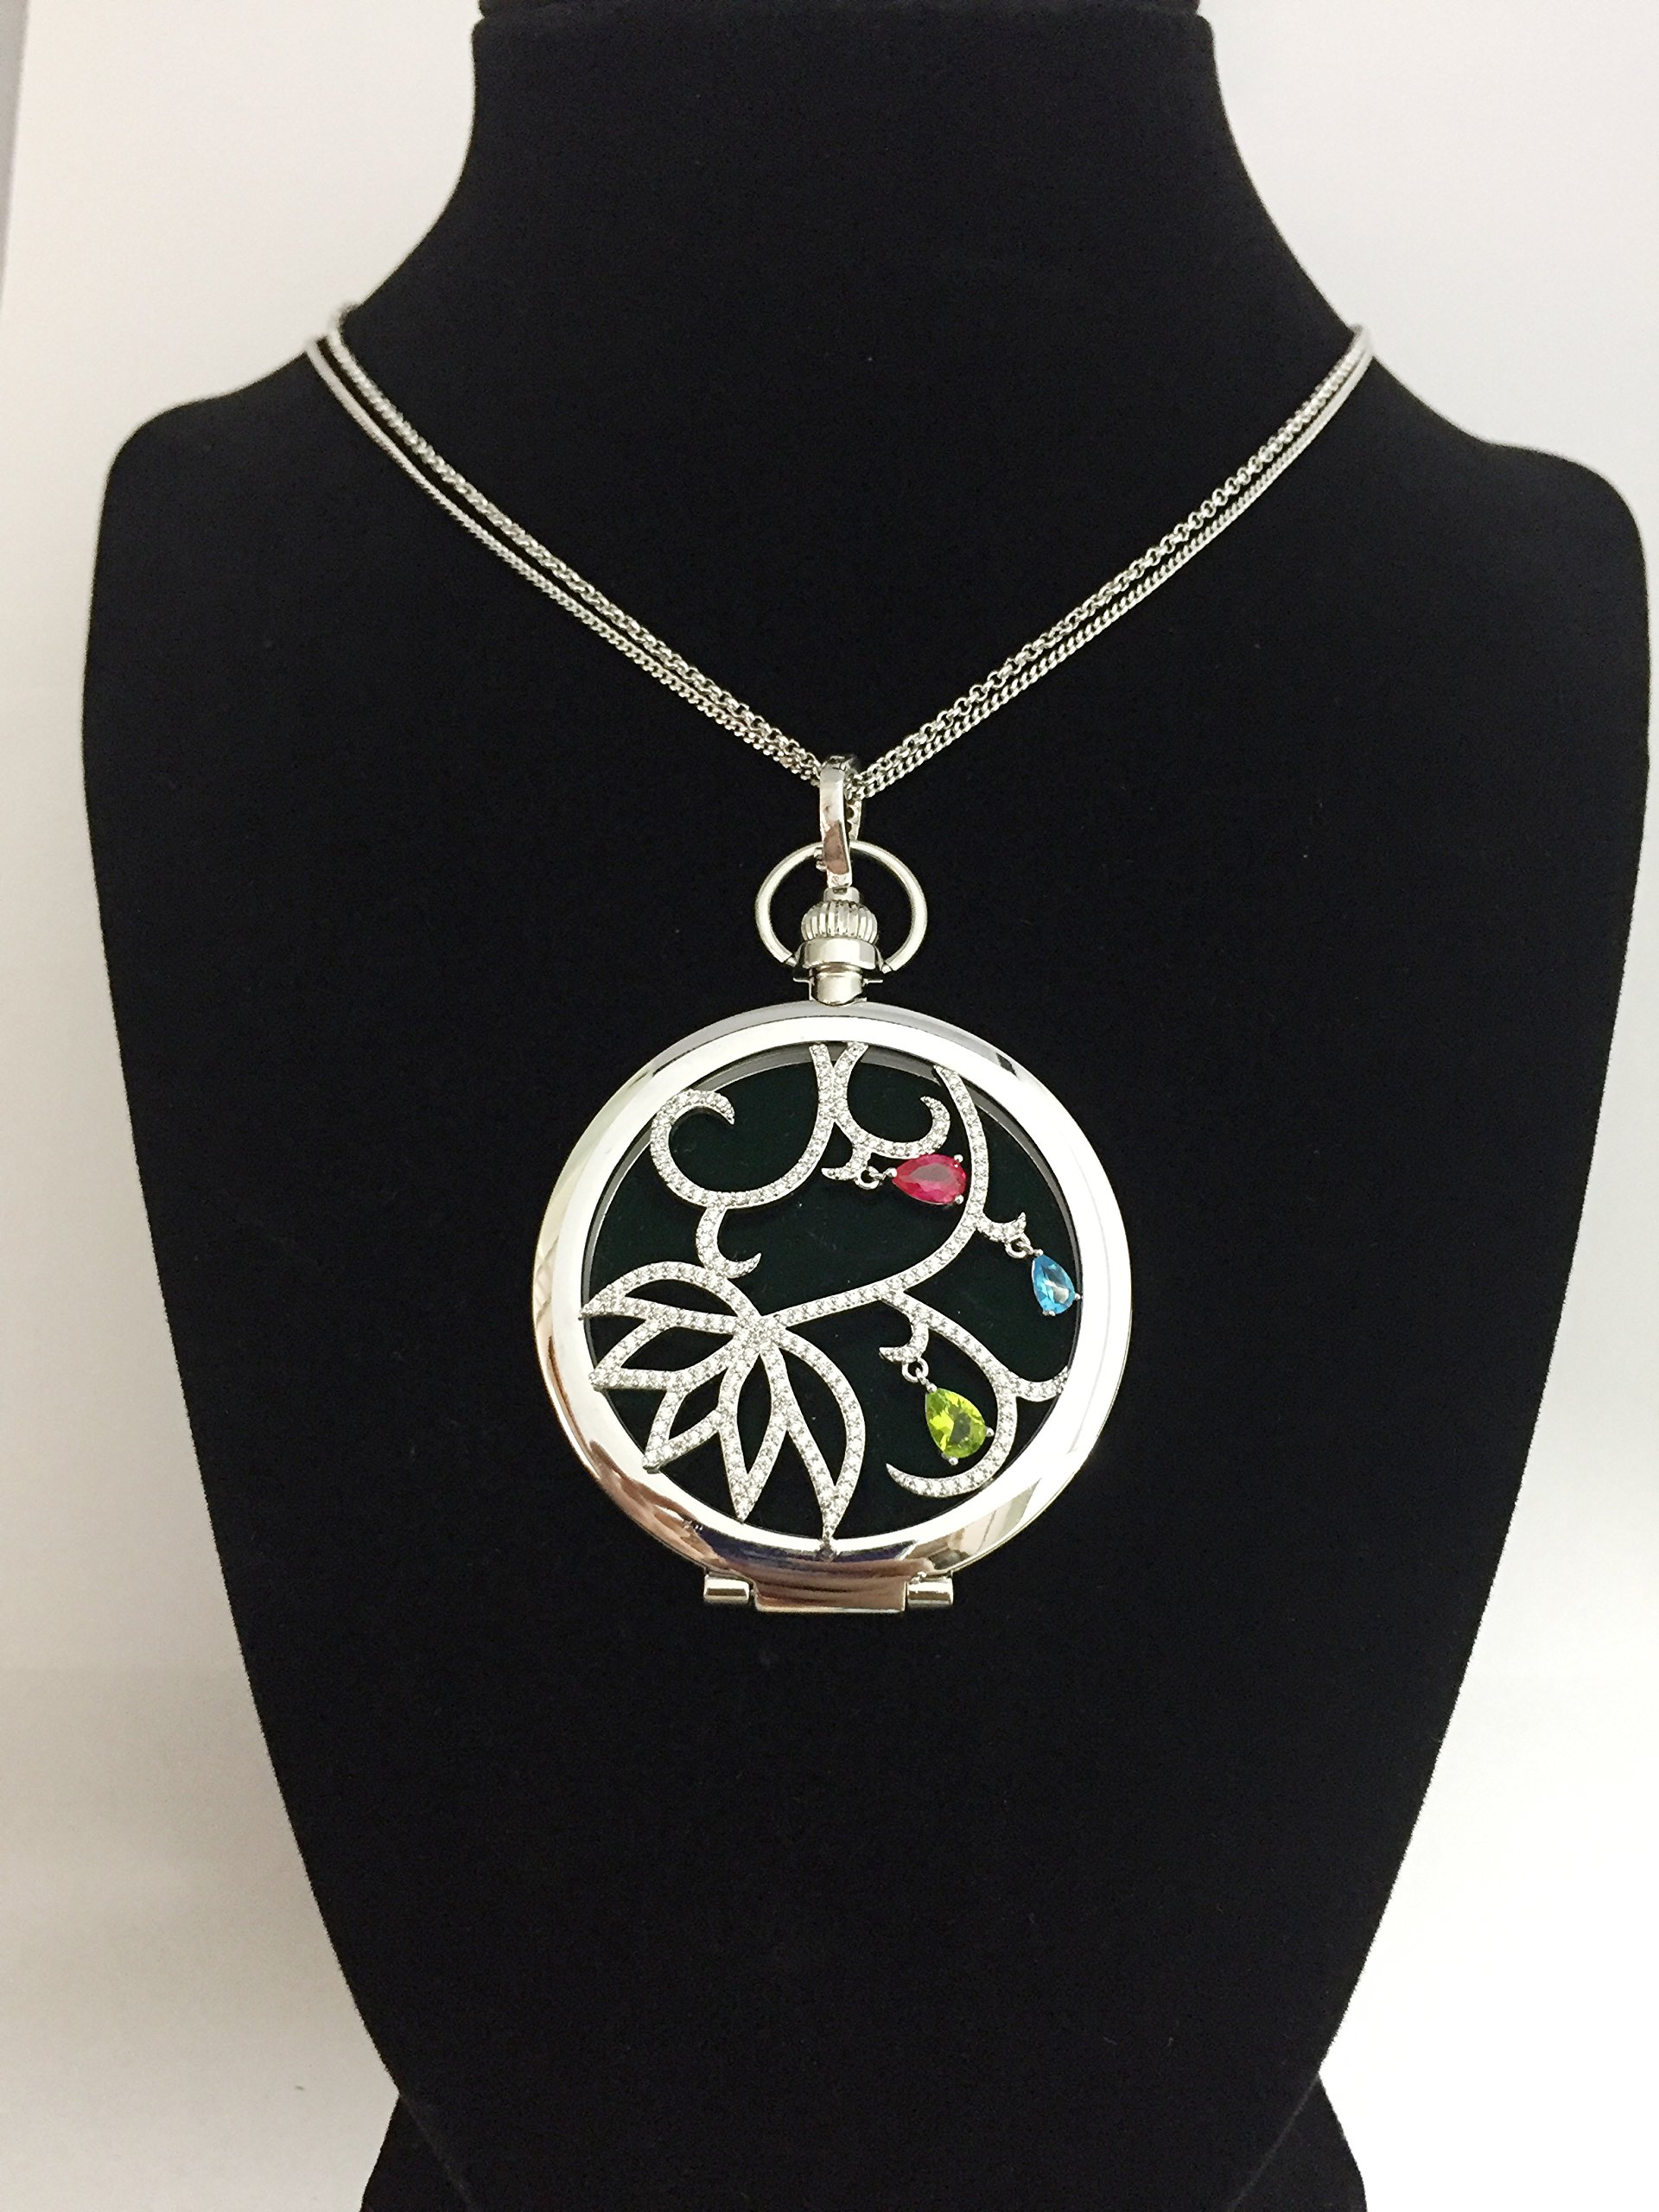 Efluvi Wind Floral Pattern Pendant Jewelry Magnifying Glass Necklace